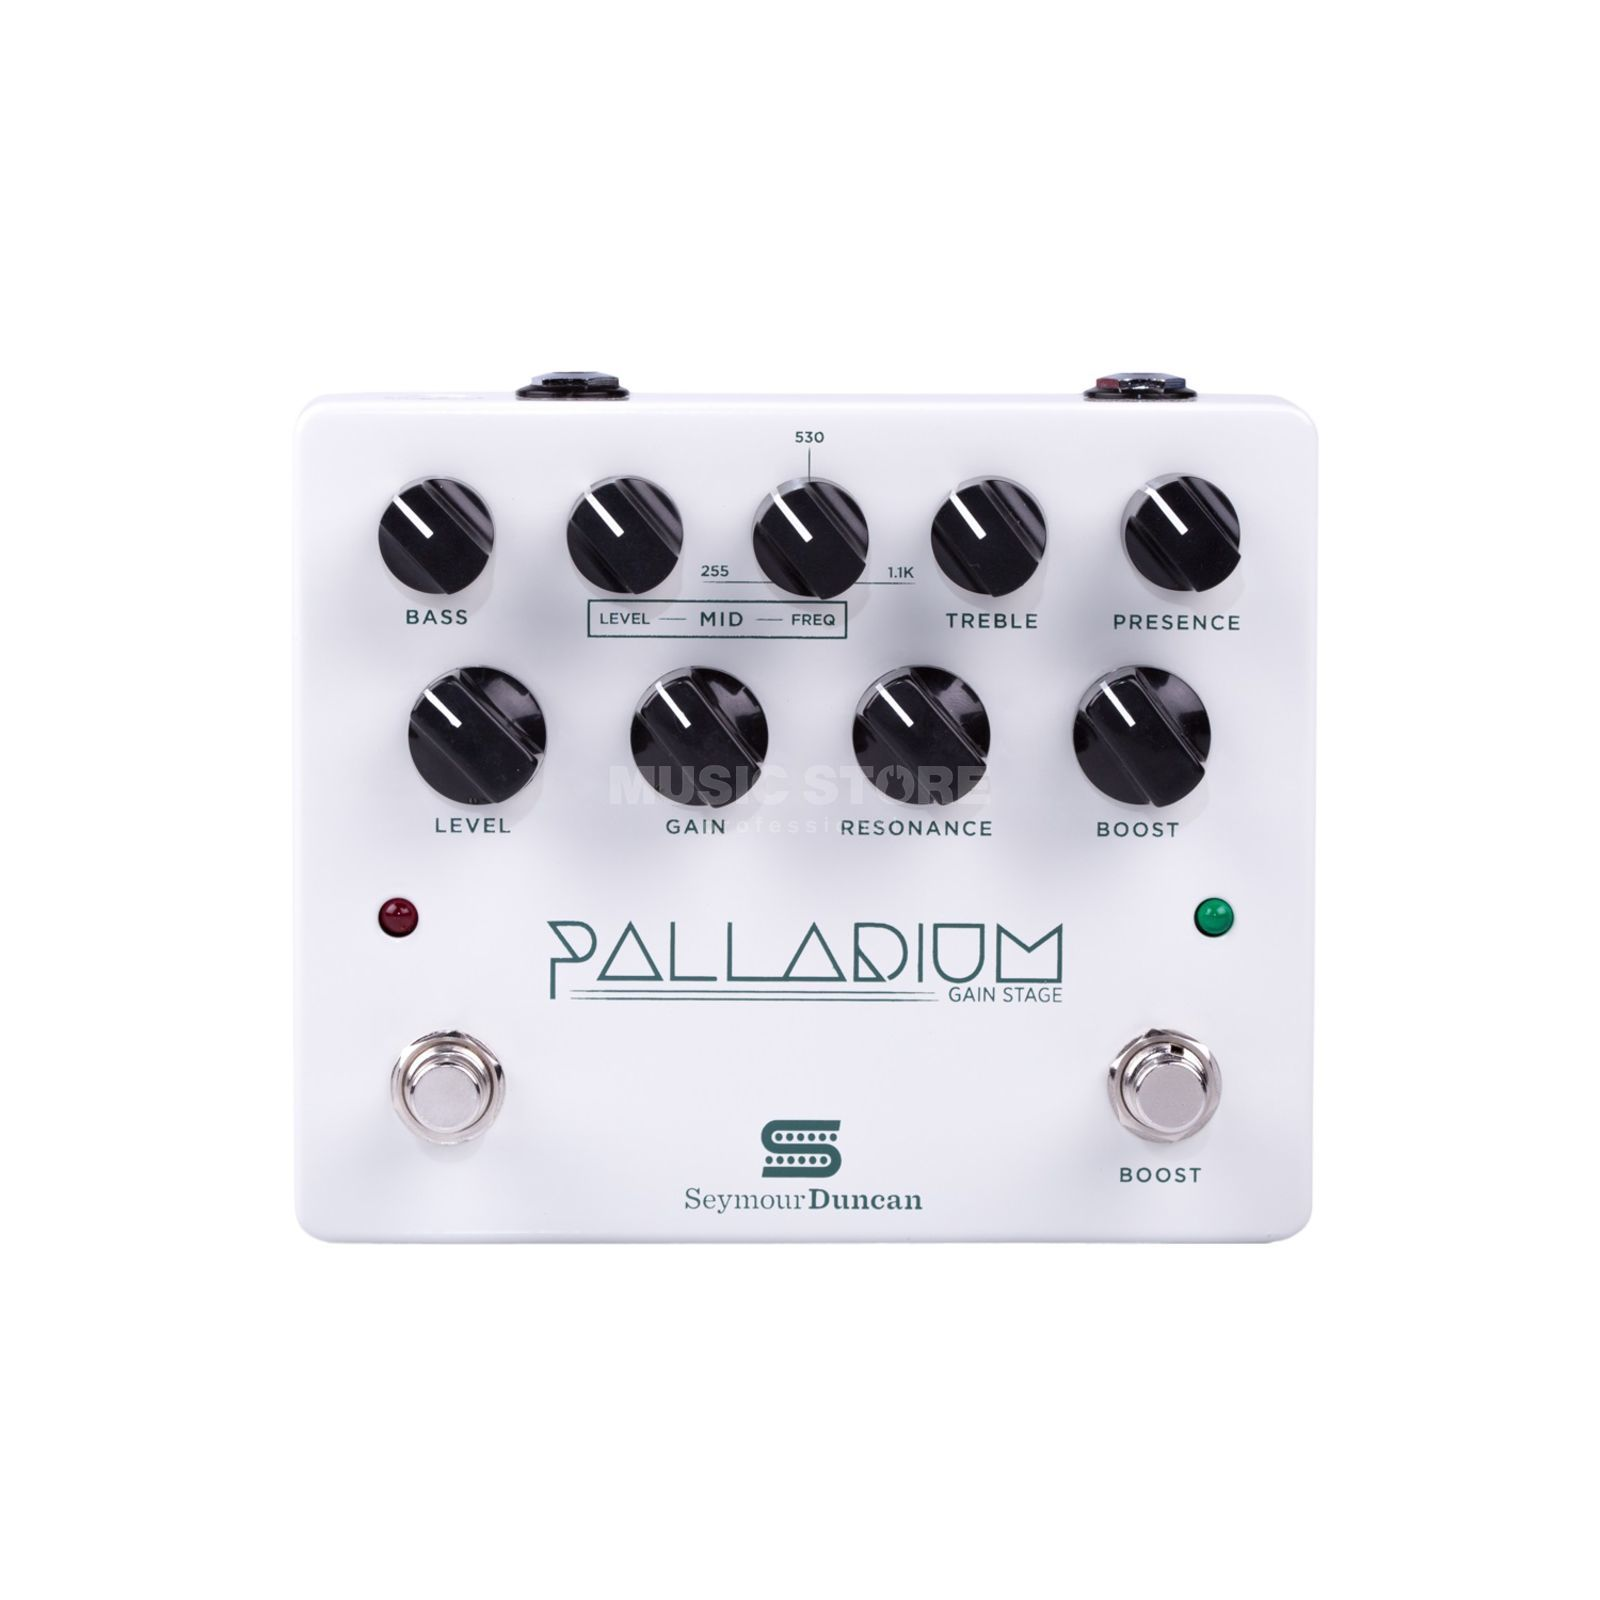 Seymour Duncan Palladium Gain Stage White Product Image